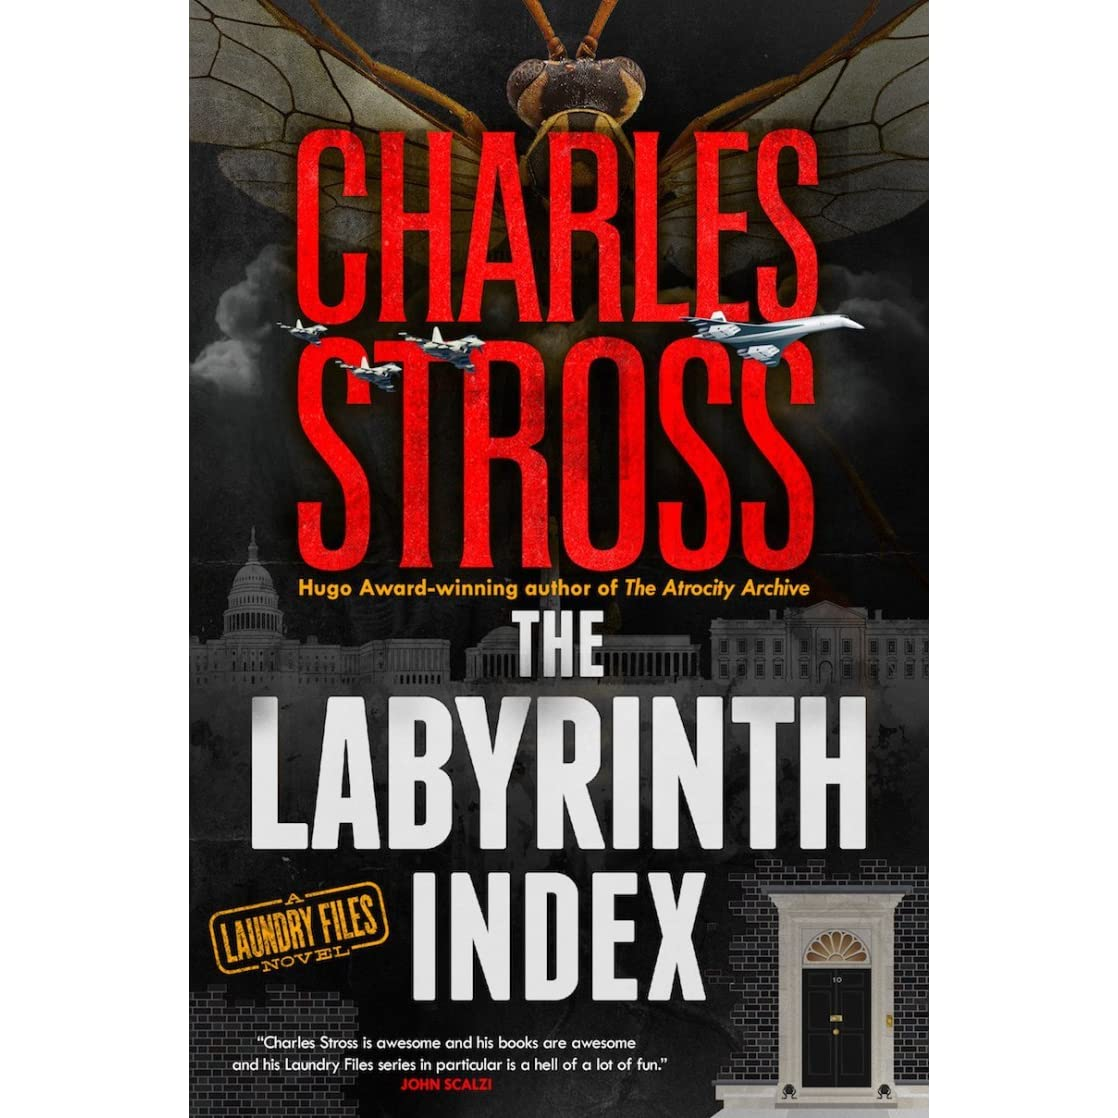 The Labyrinth Index (Laundry Files, #9) by Charles Stross